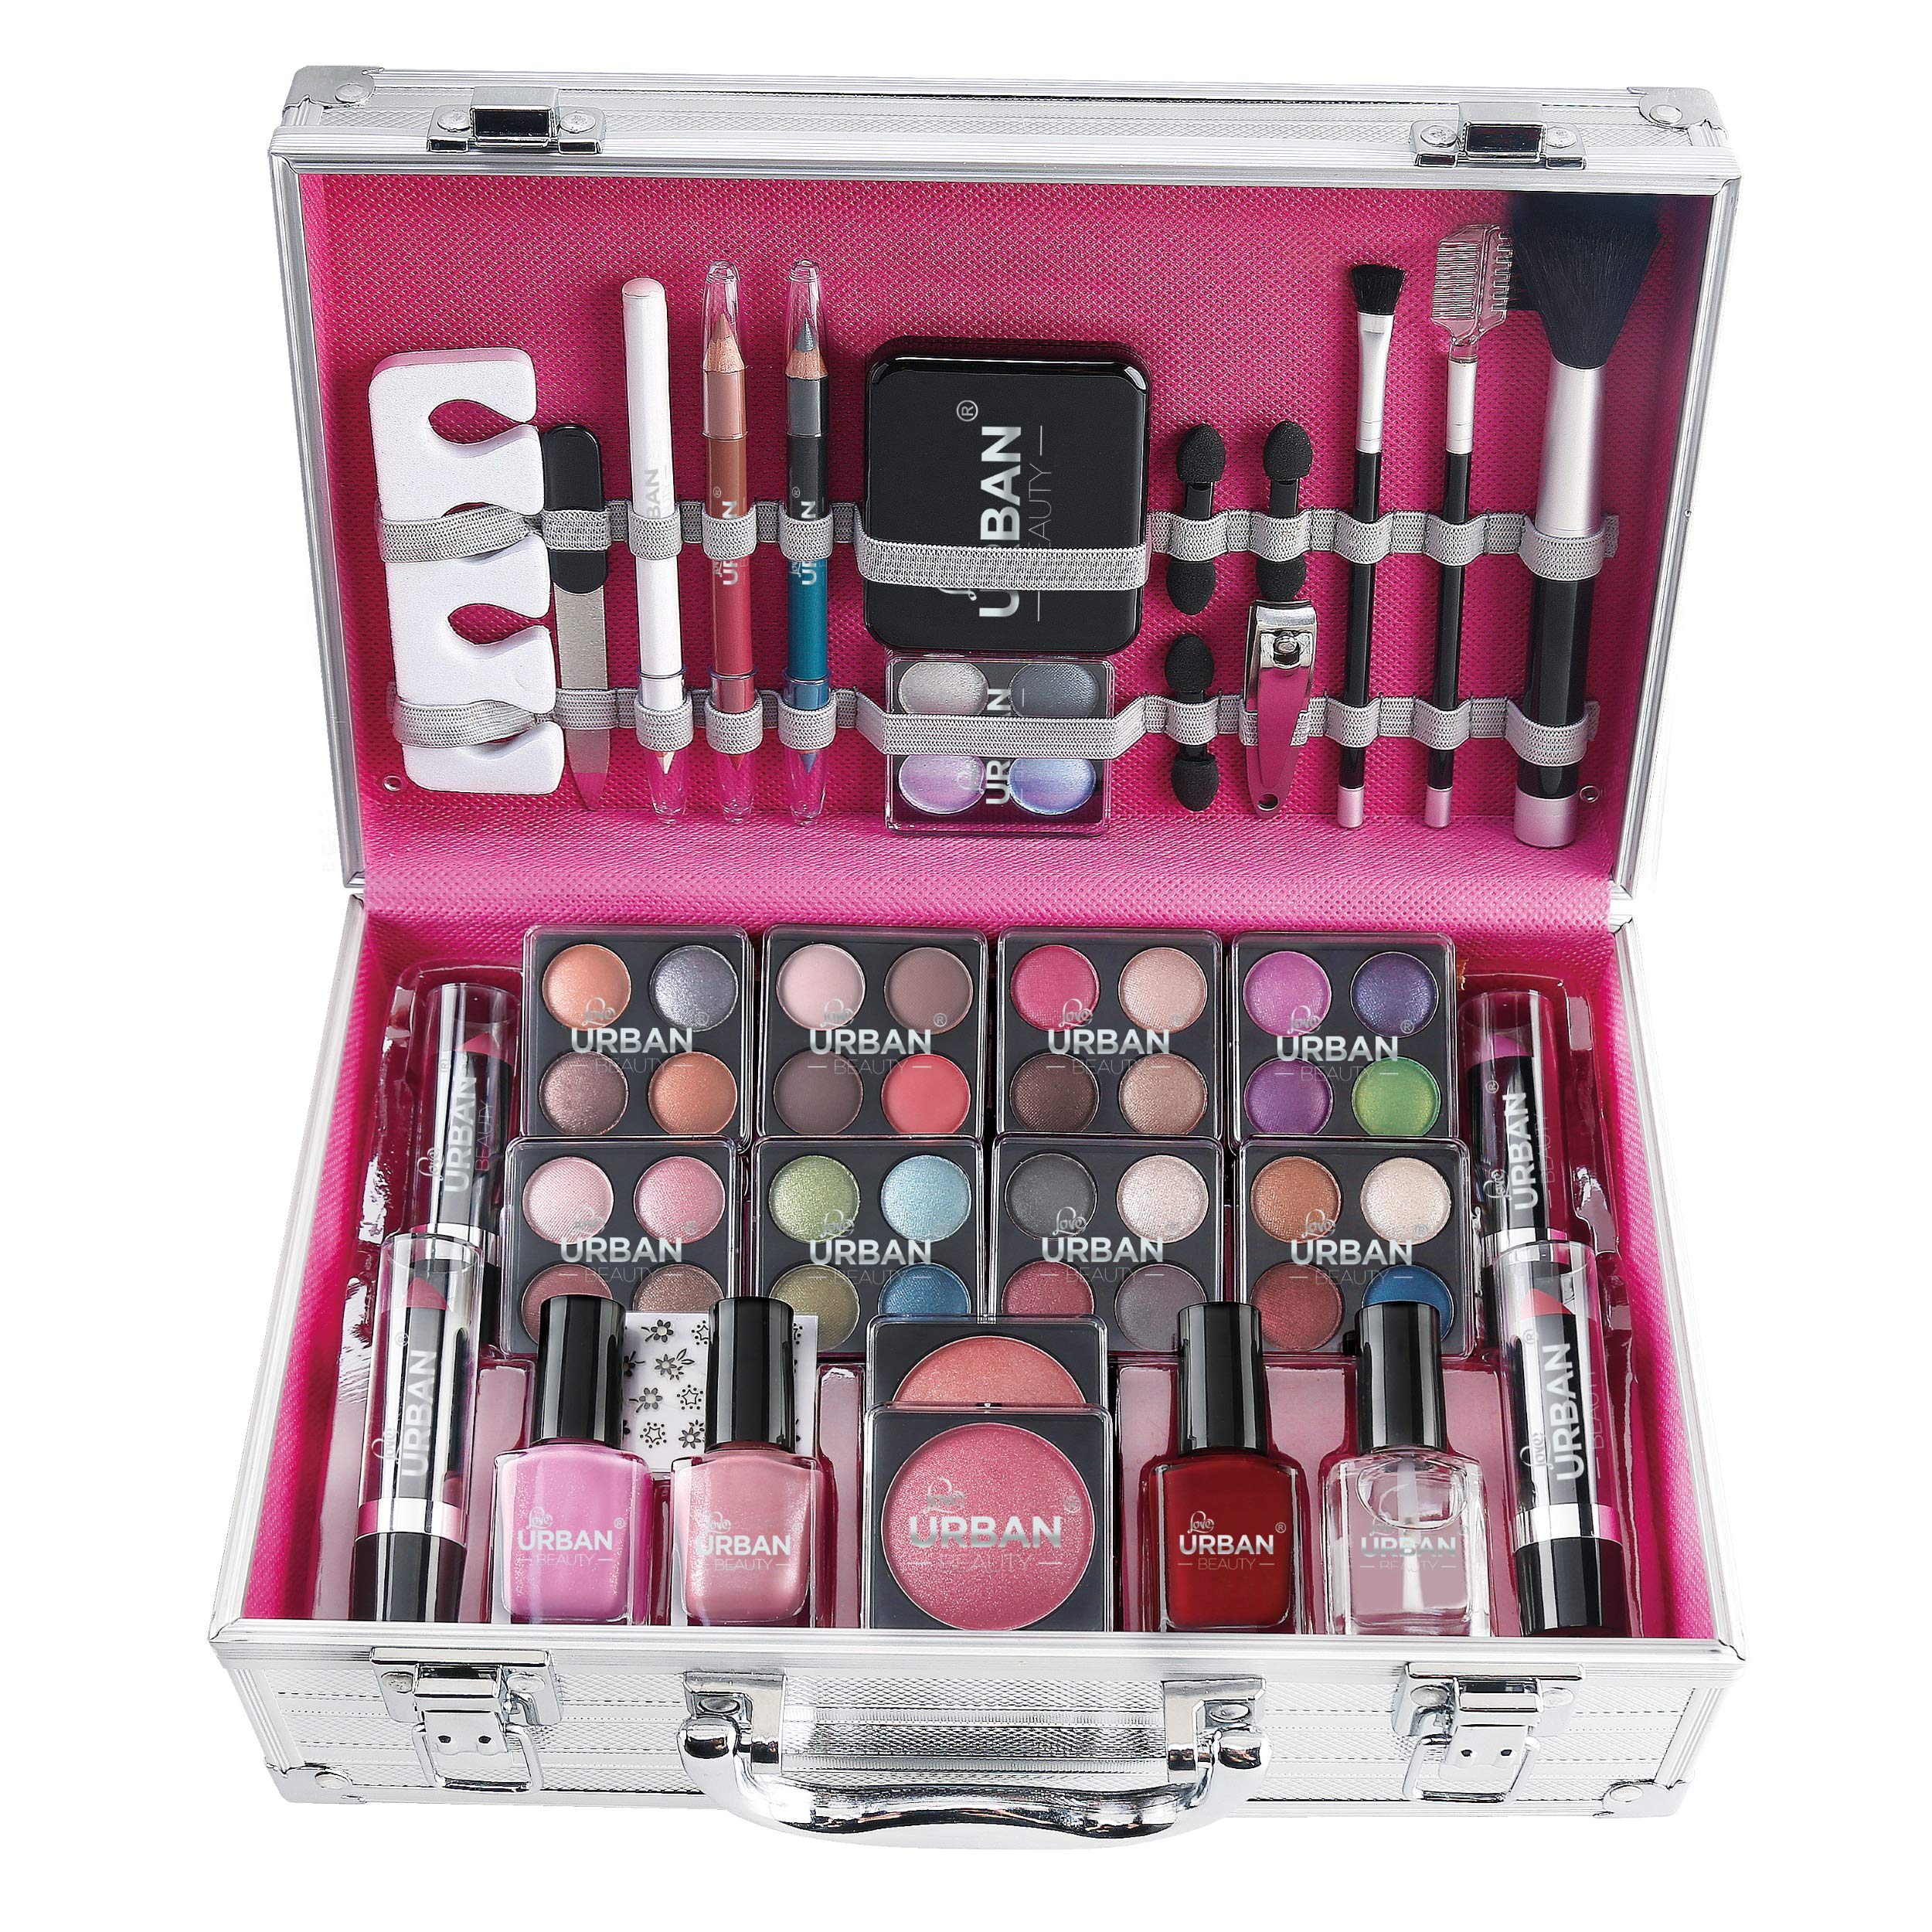 Love Urban Beauty 64 Piece complete Beauty Makeup Vanity Cosmetic Storage Set